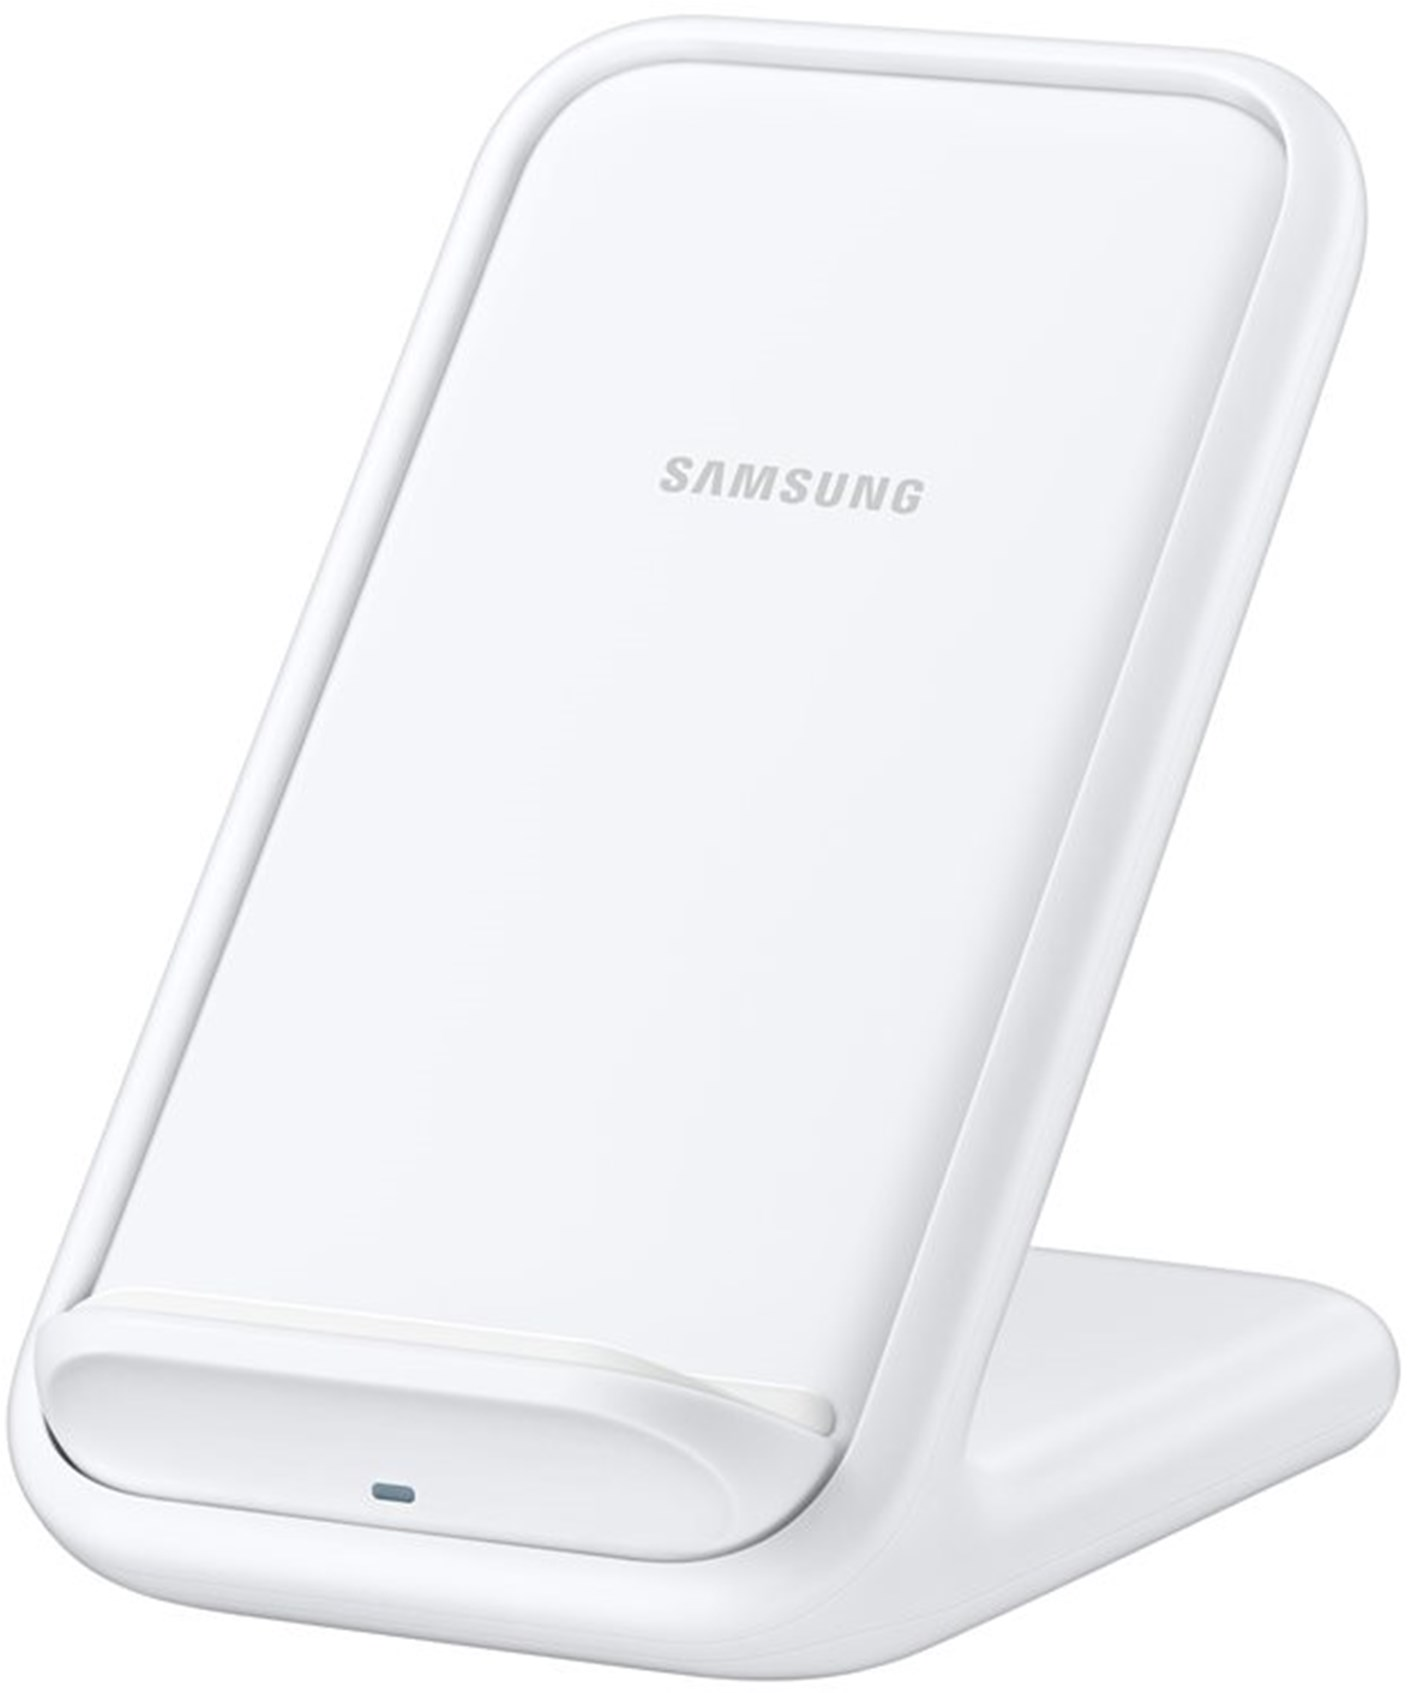 Samsung Wireless Charging Stand 15W White EP-N5200TWEGWW